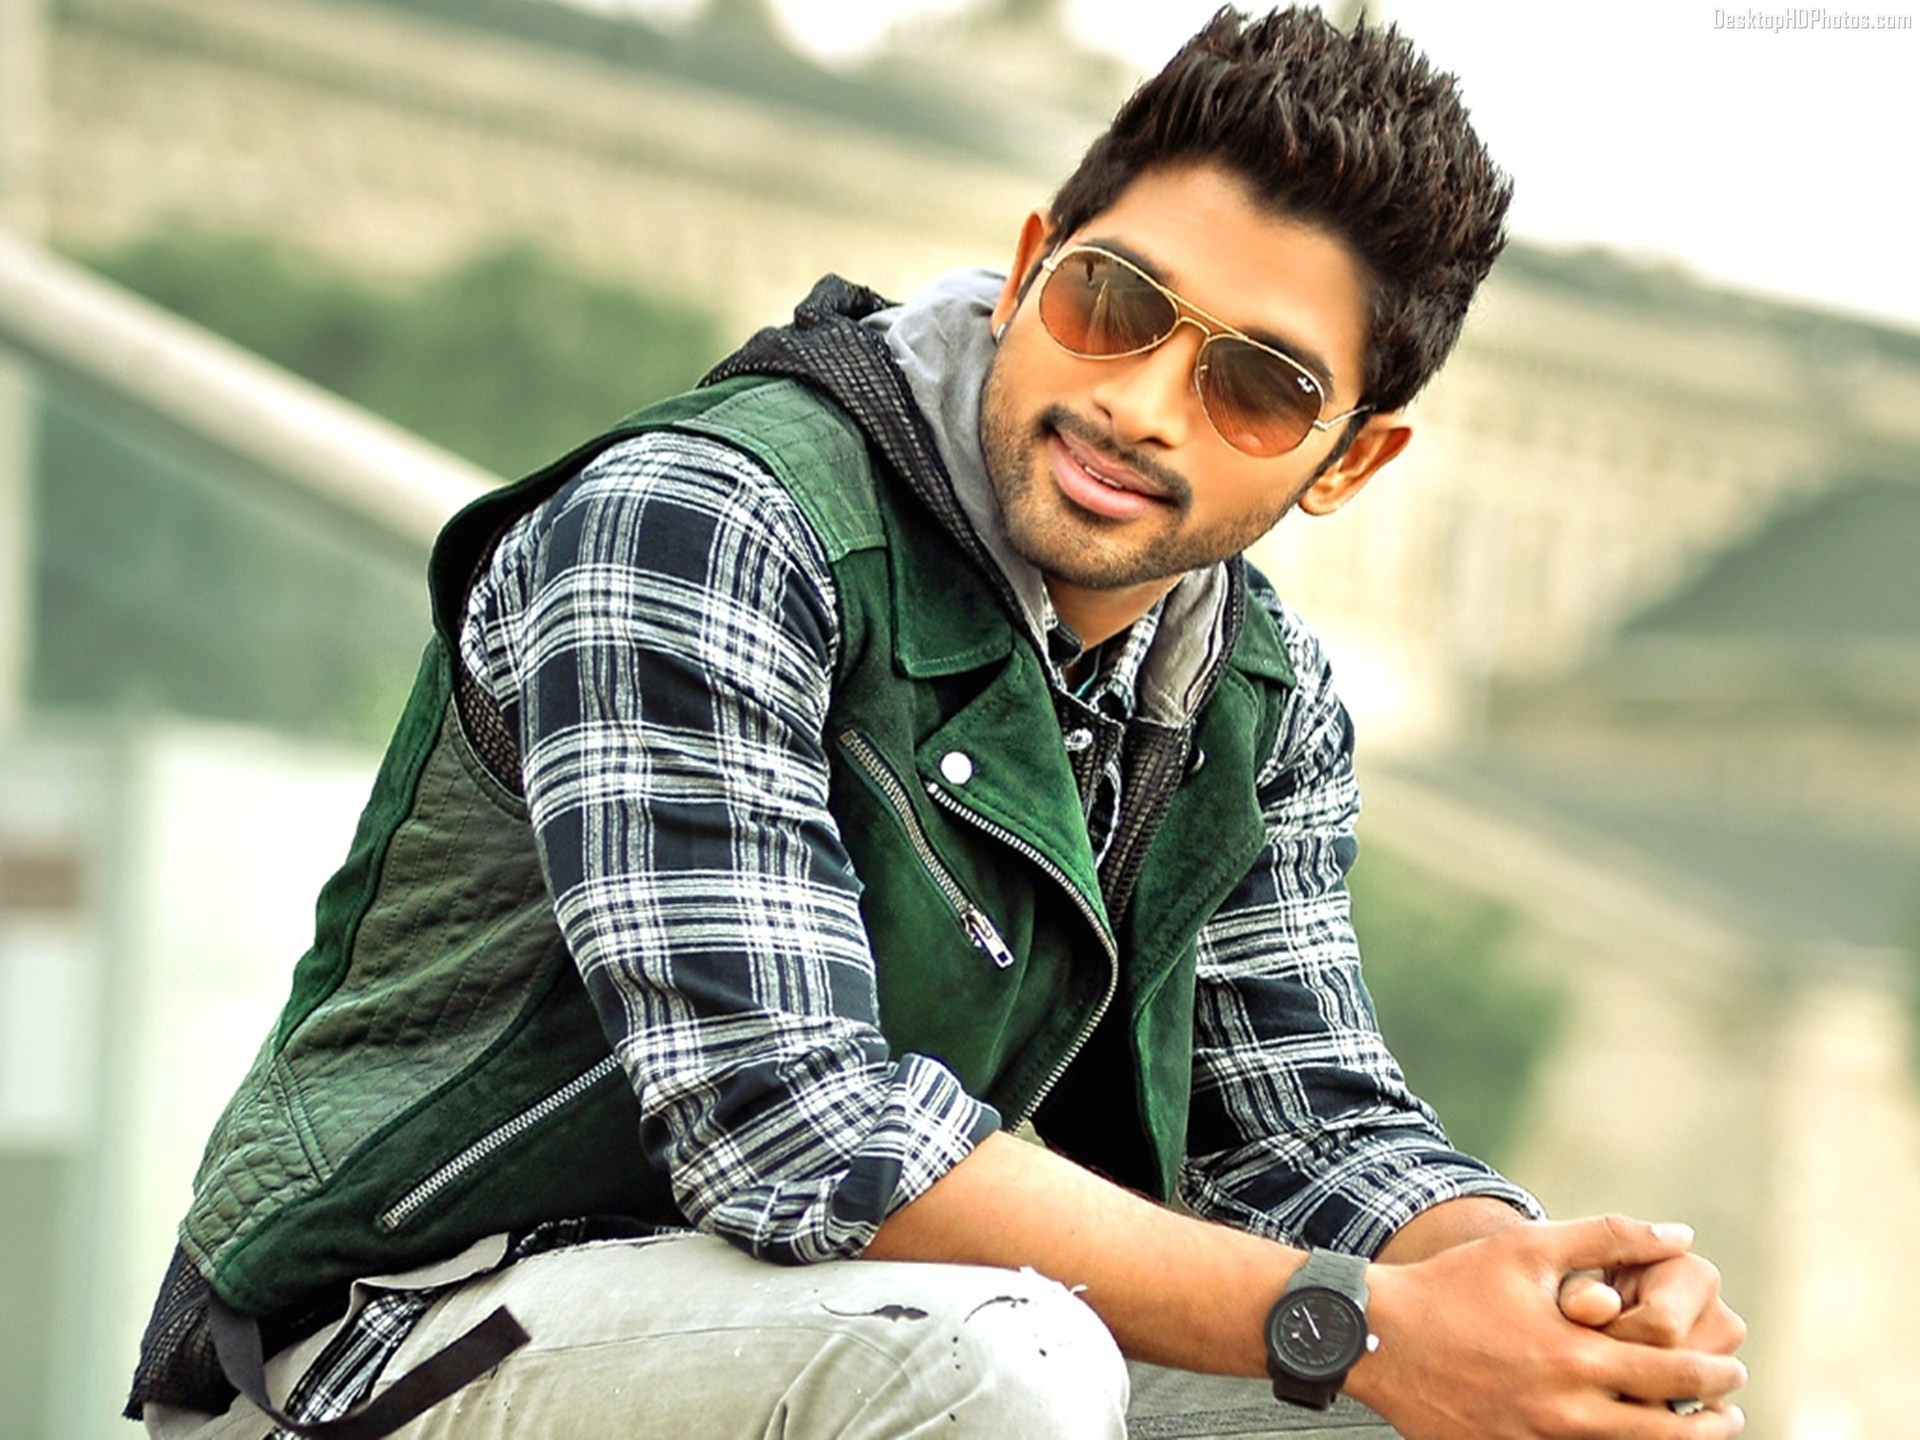 Dj Allu Arjun Hairstyle Hd Pic Pin By Sabir Pathan On Sabir